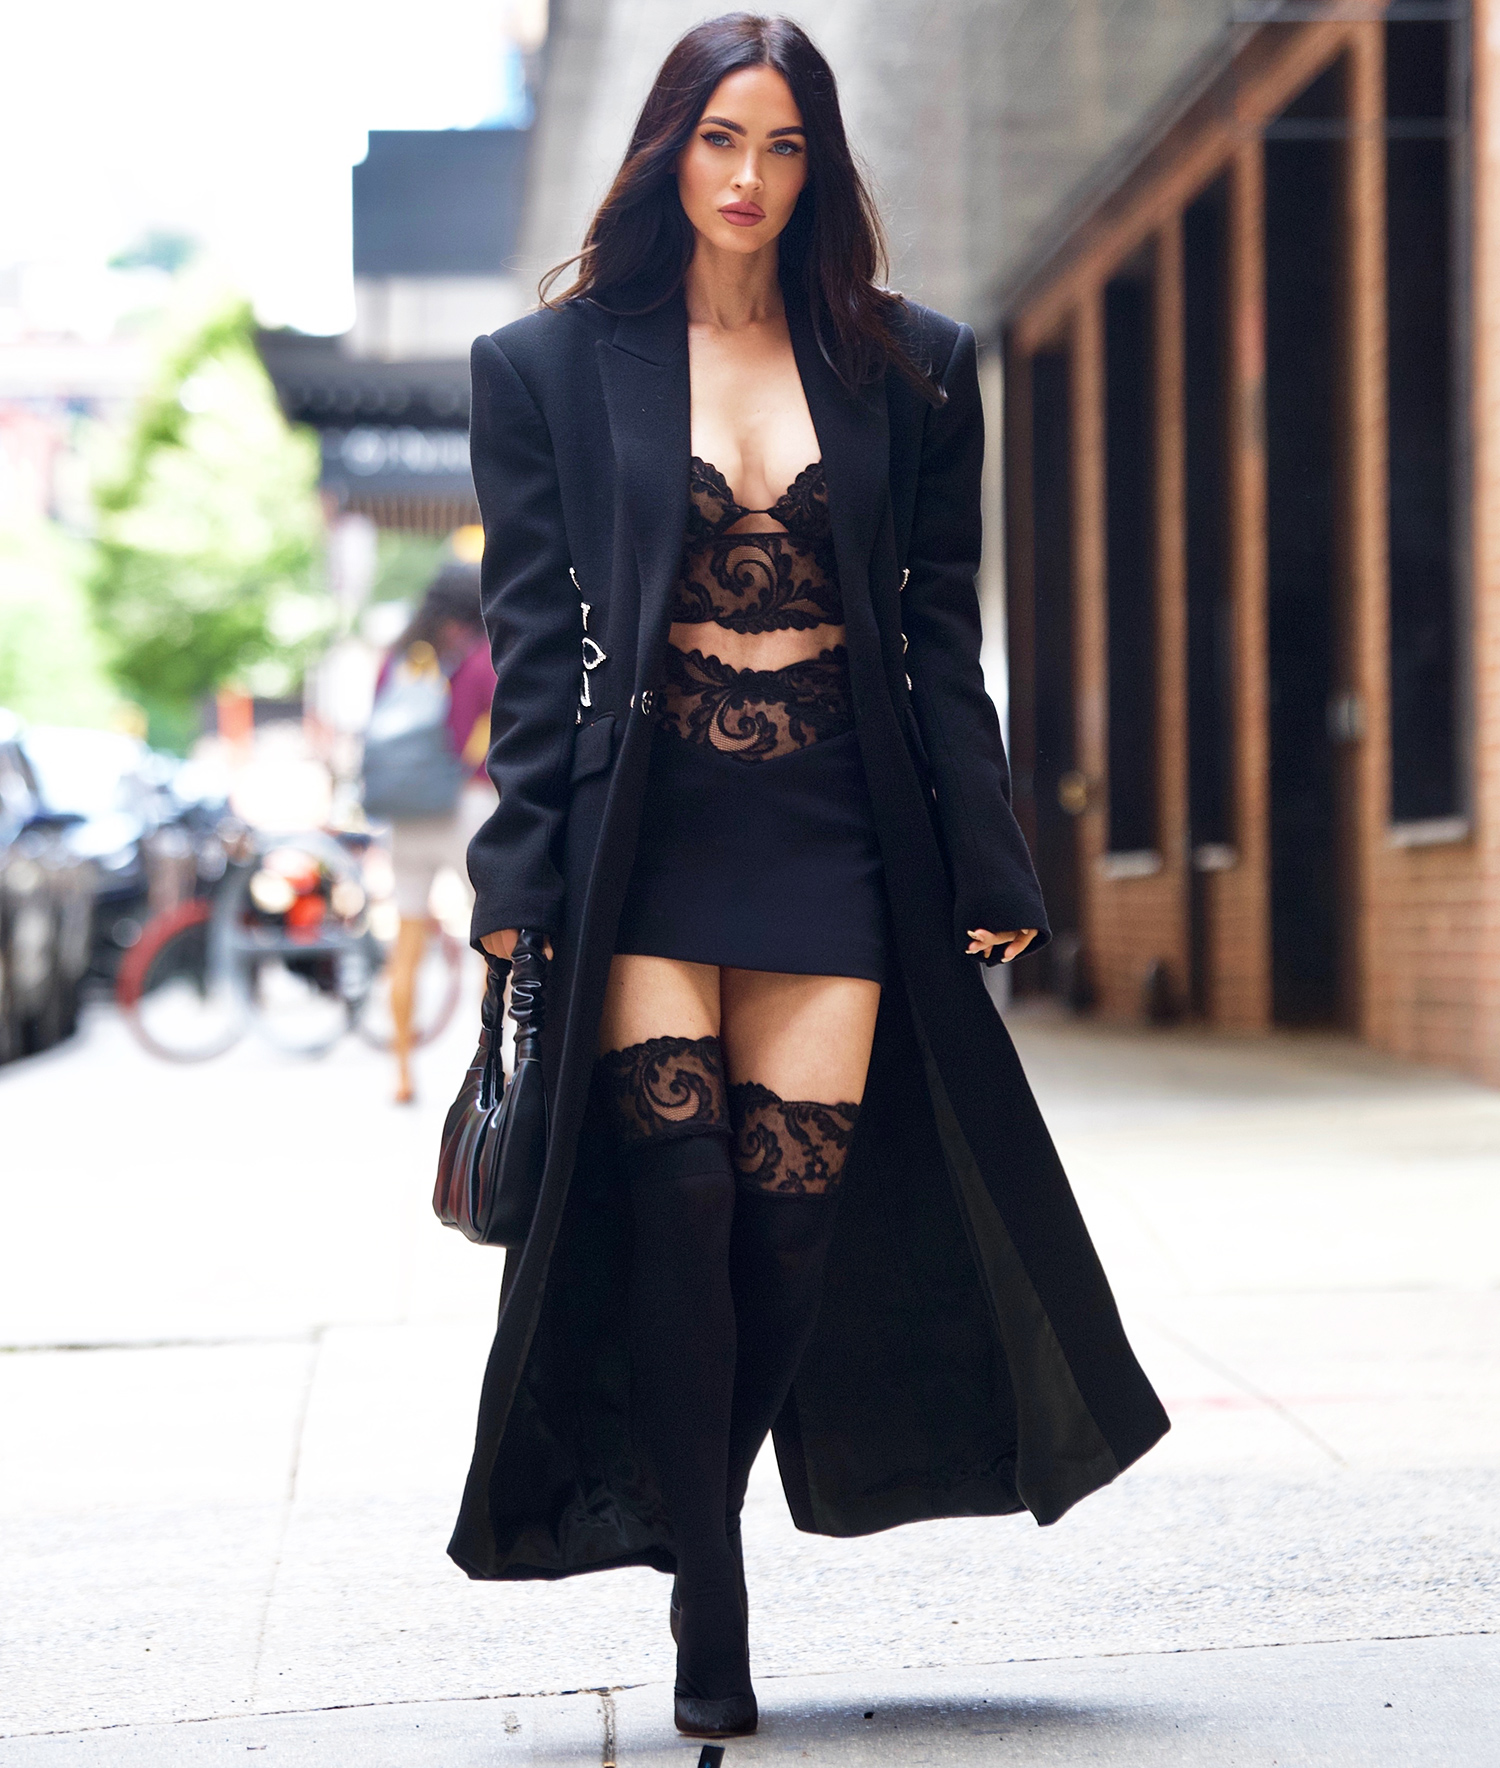 Megan Fox Sets Pulses Racing in Black Lace as She Heads to a Secret Fitting in NYC, New York, USA - 11 Sep 2021